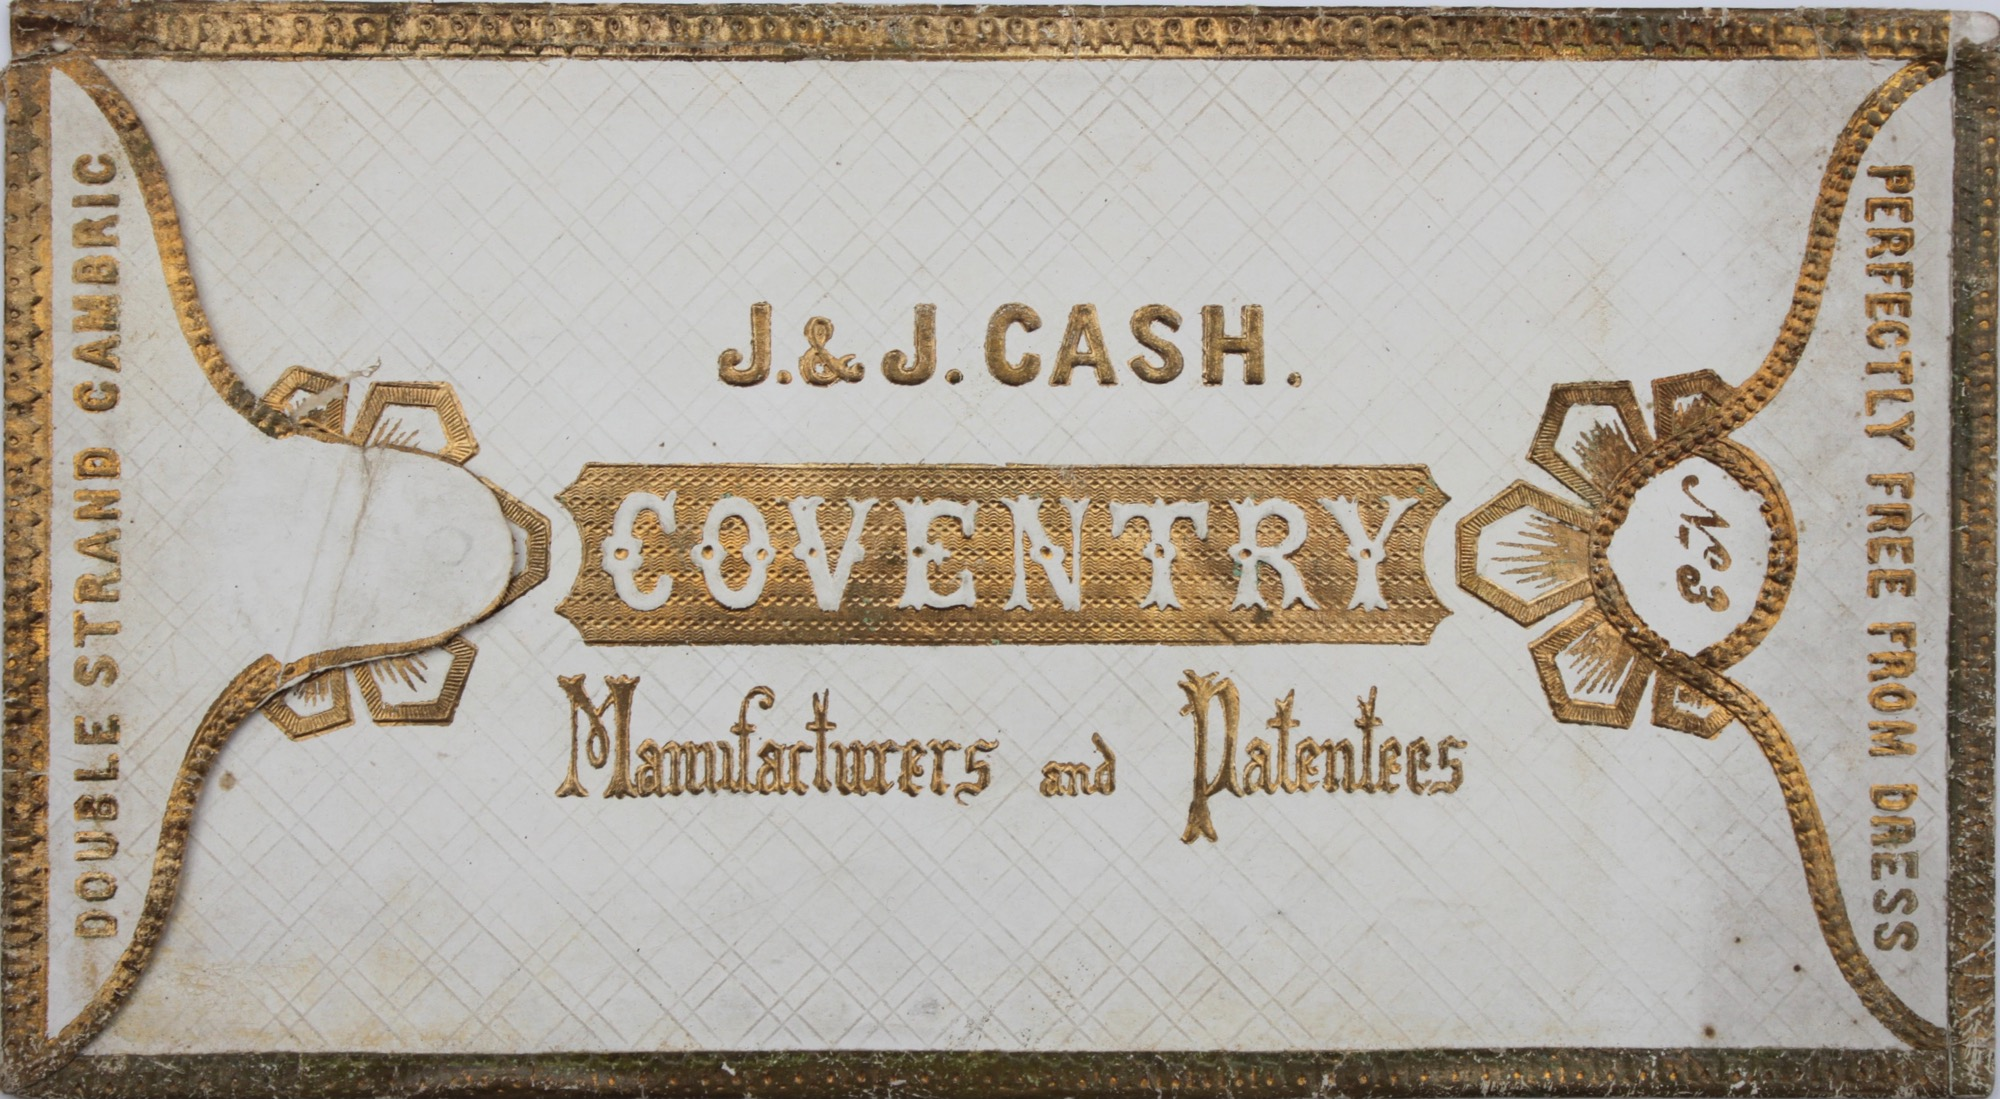 Image for J. & J. Cash, Manufacturers and Patentees.